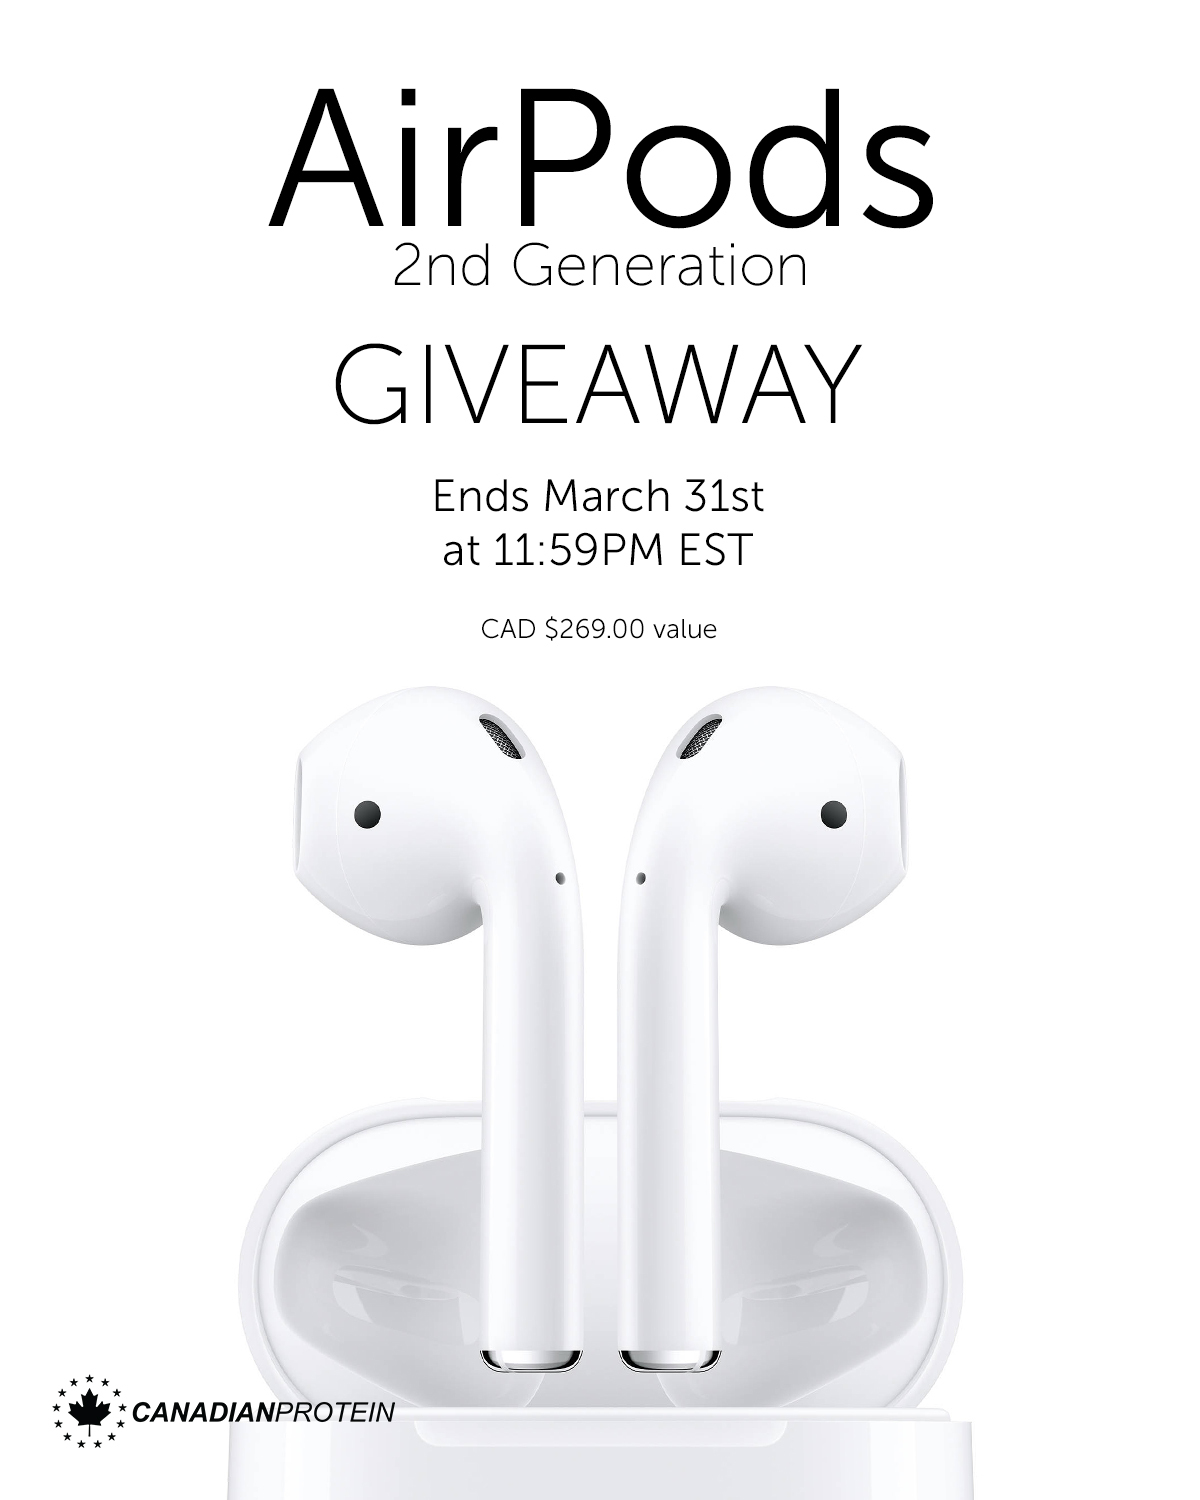 Airpods 2nd Generation Giveaway Giveaway Image